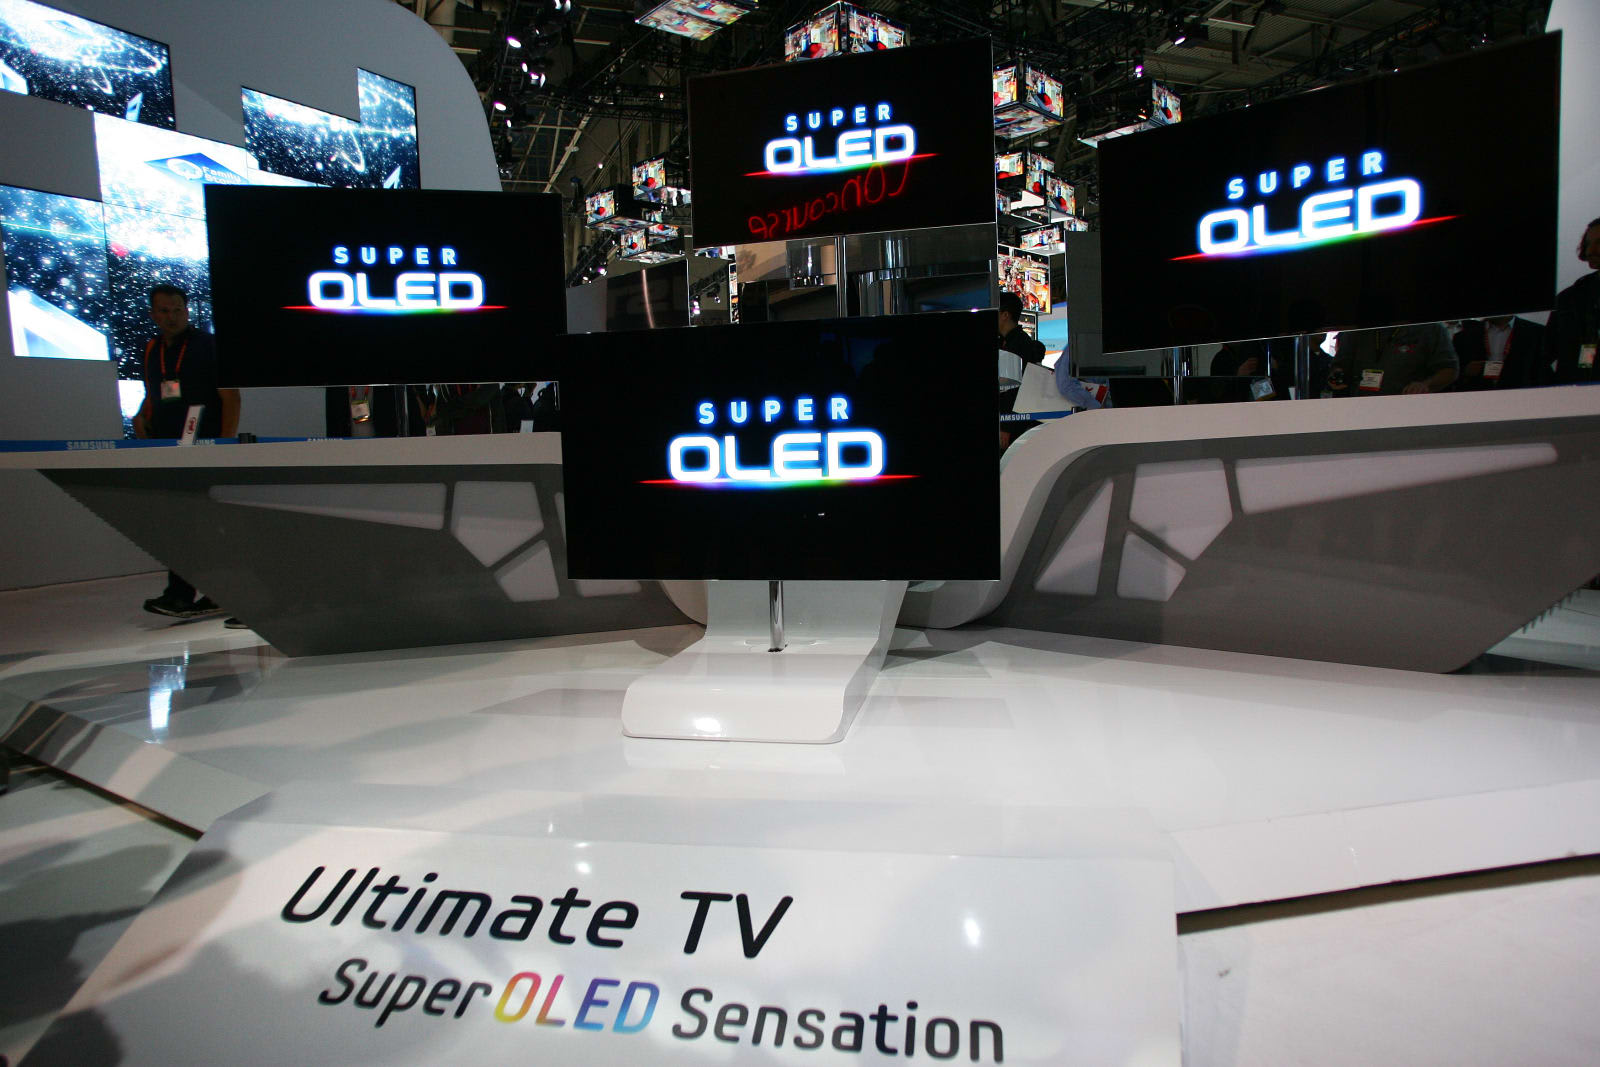 Samsung gets closer to building 'QD-OLED' TVs that rival LG's OLED